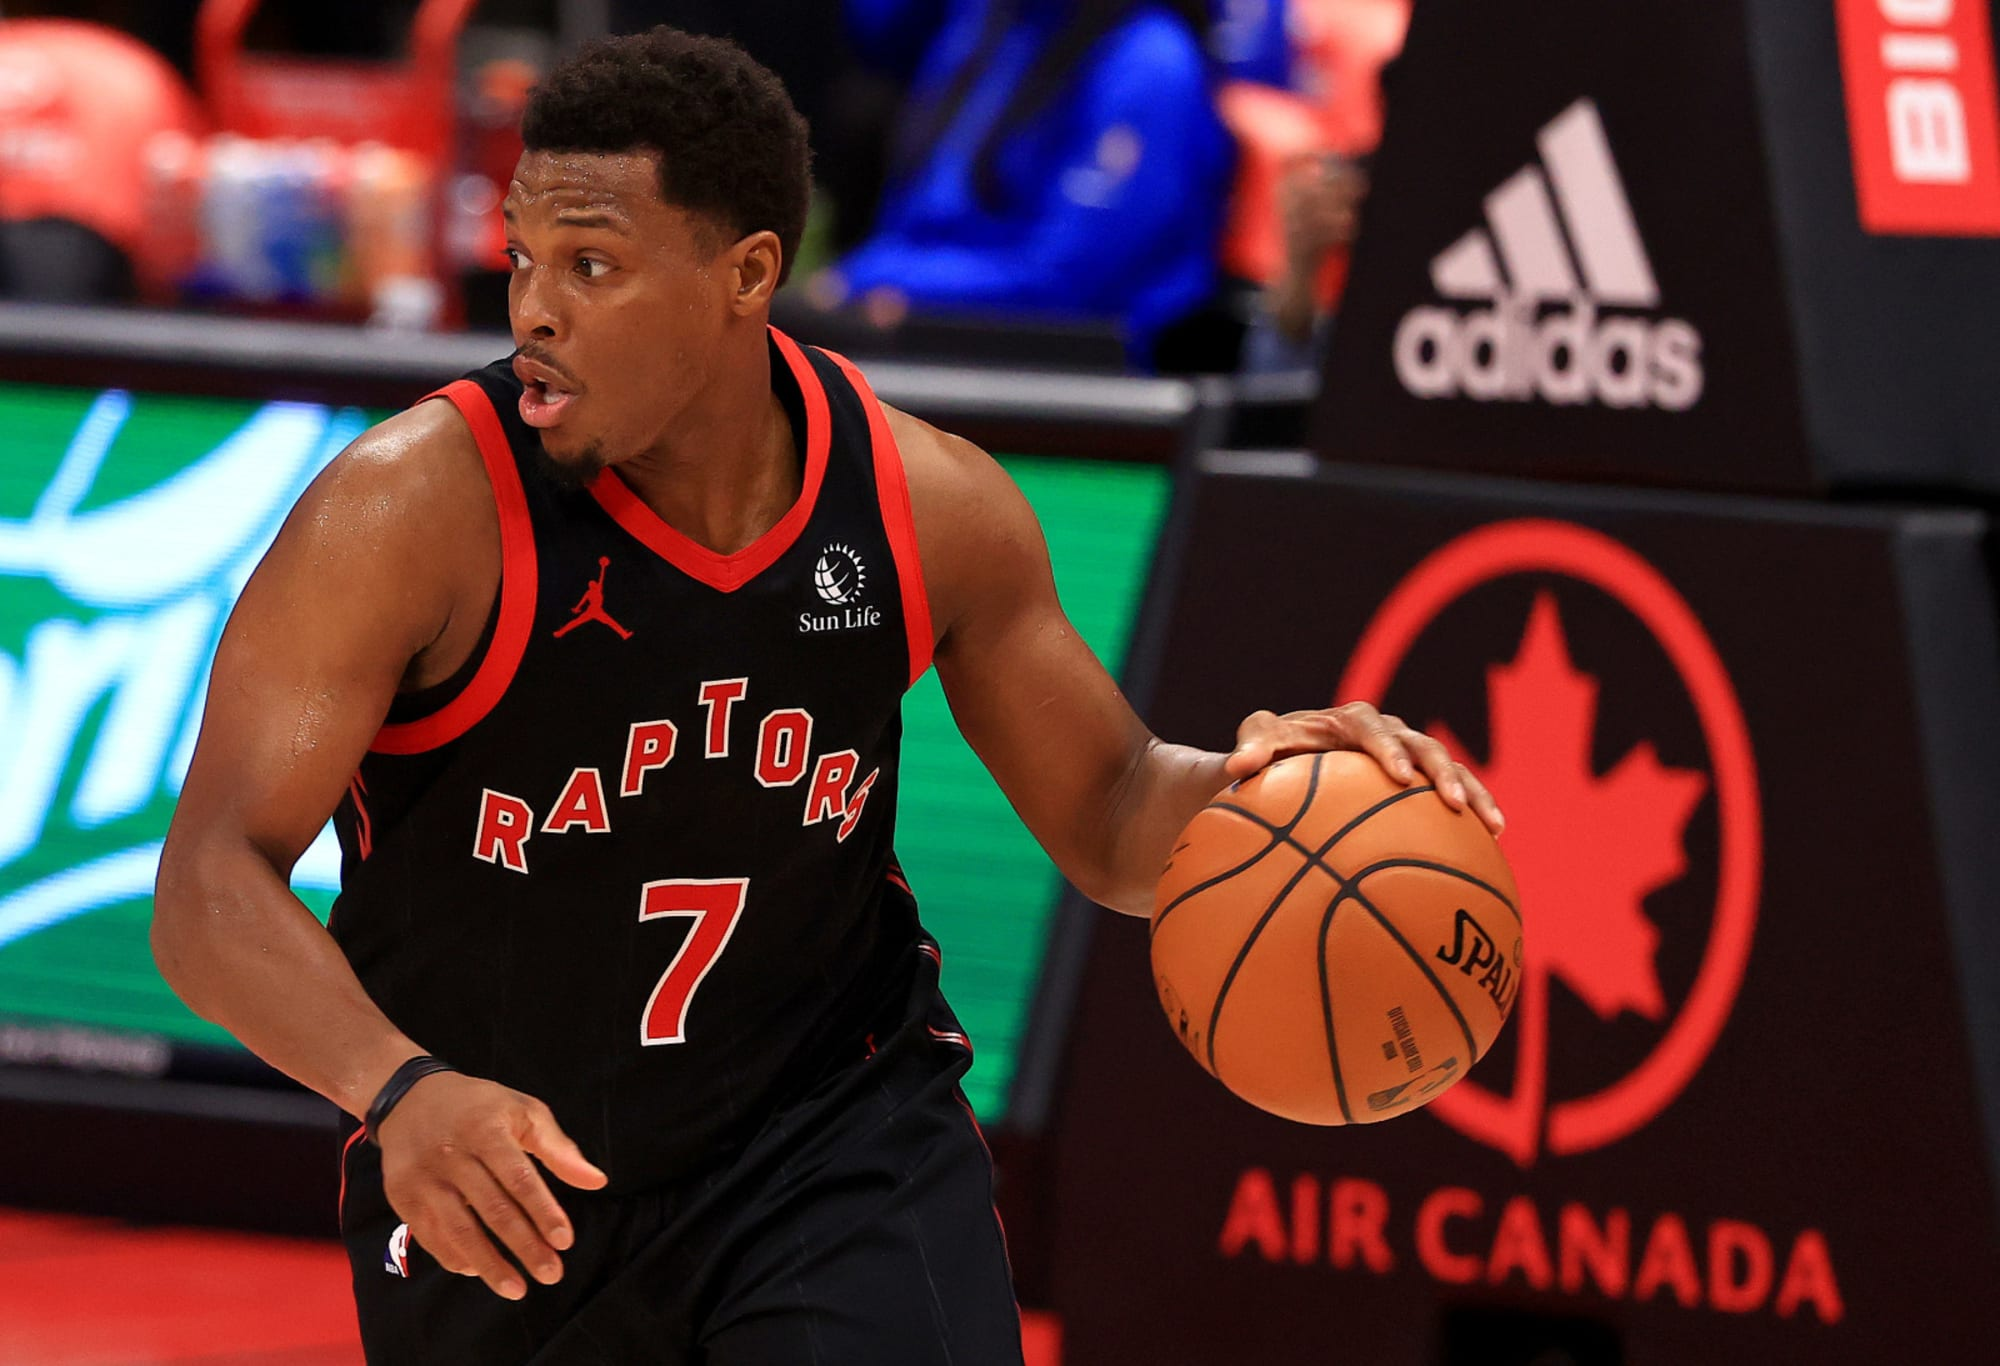 The Raptors need to keep Kyle Lowry around and ignore the trade rumors